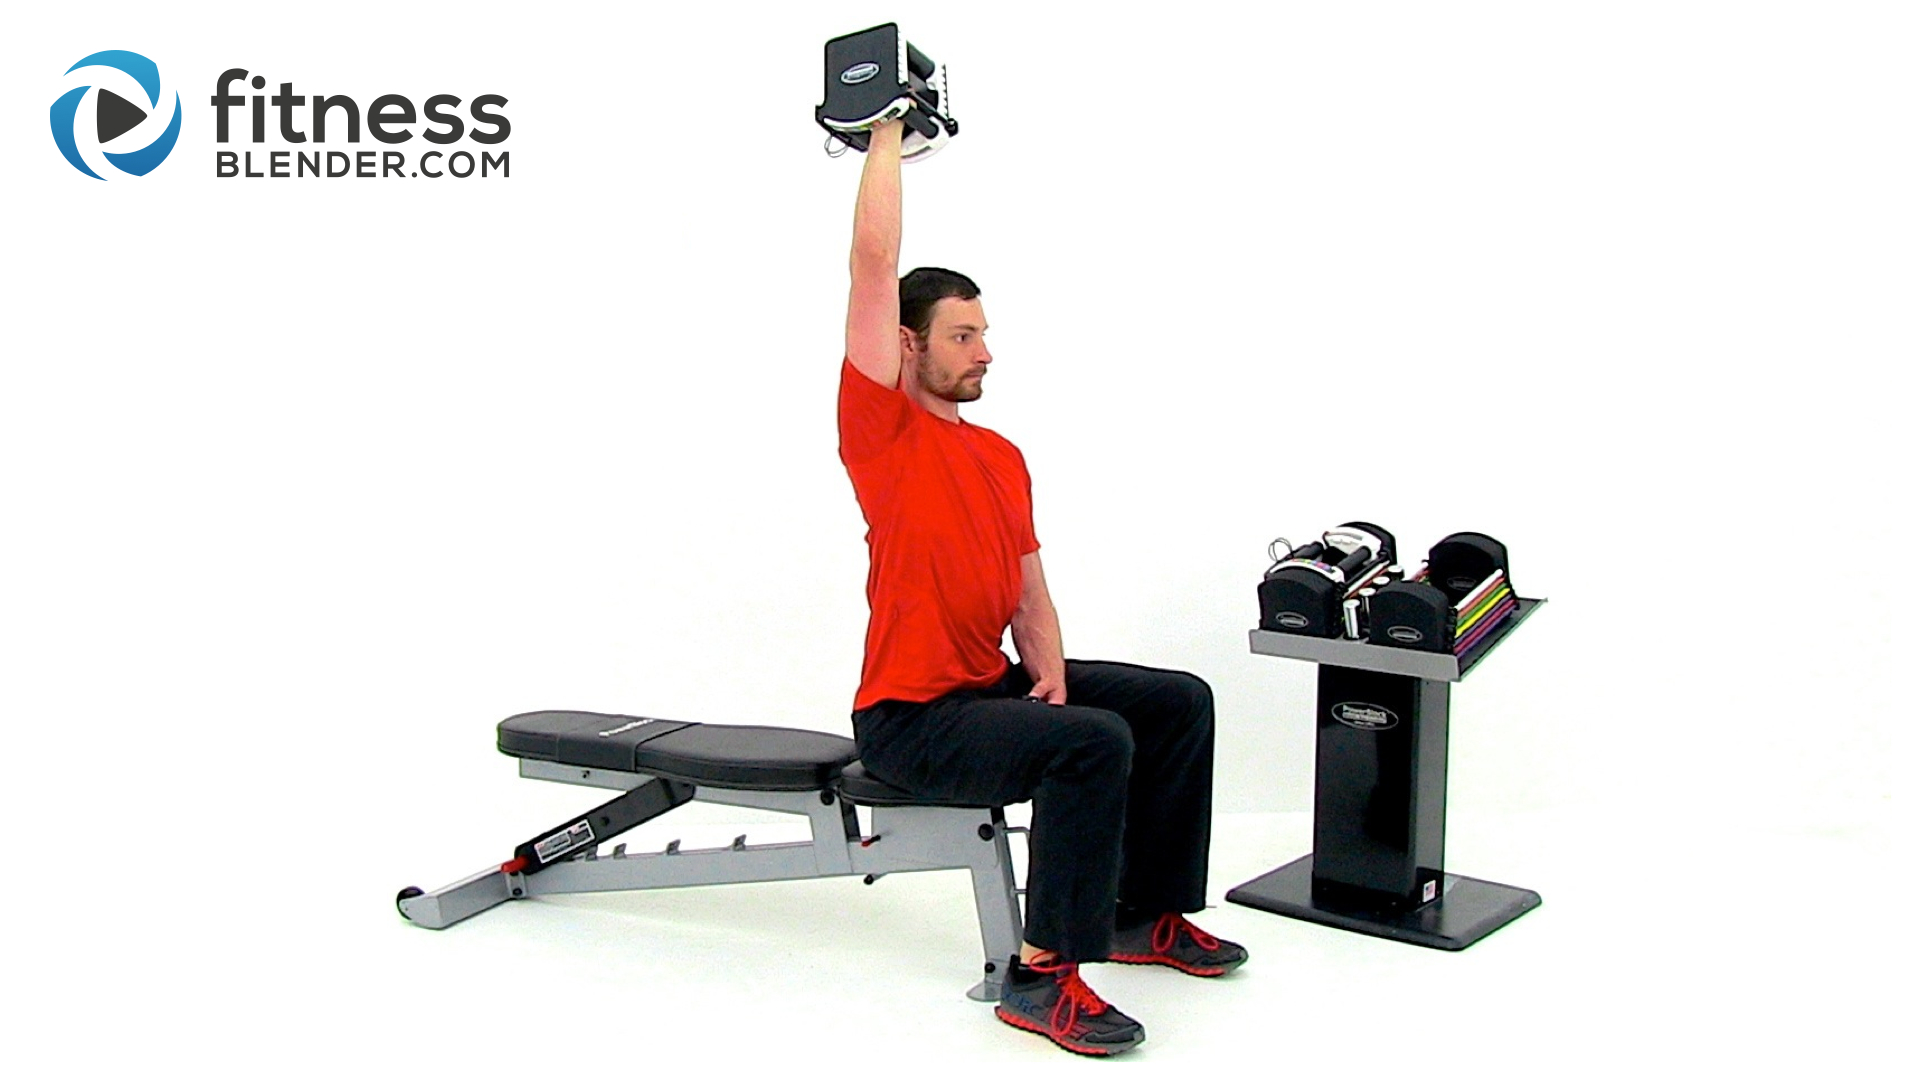 Strength Training For Arms And Shoulders